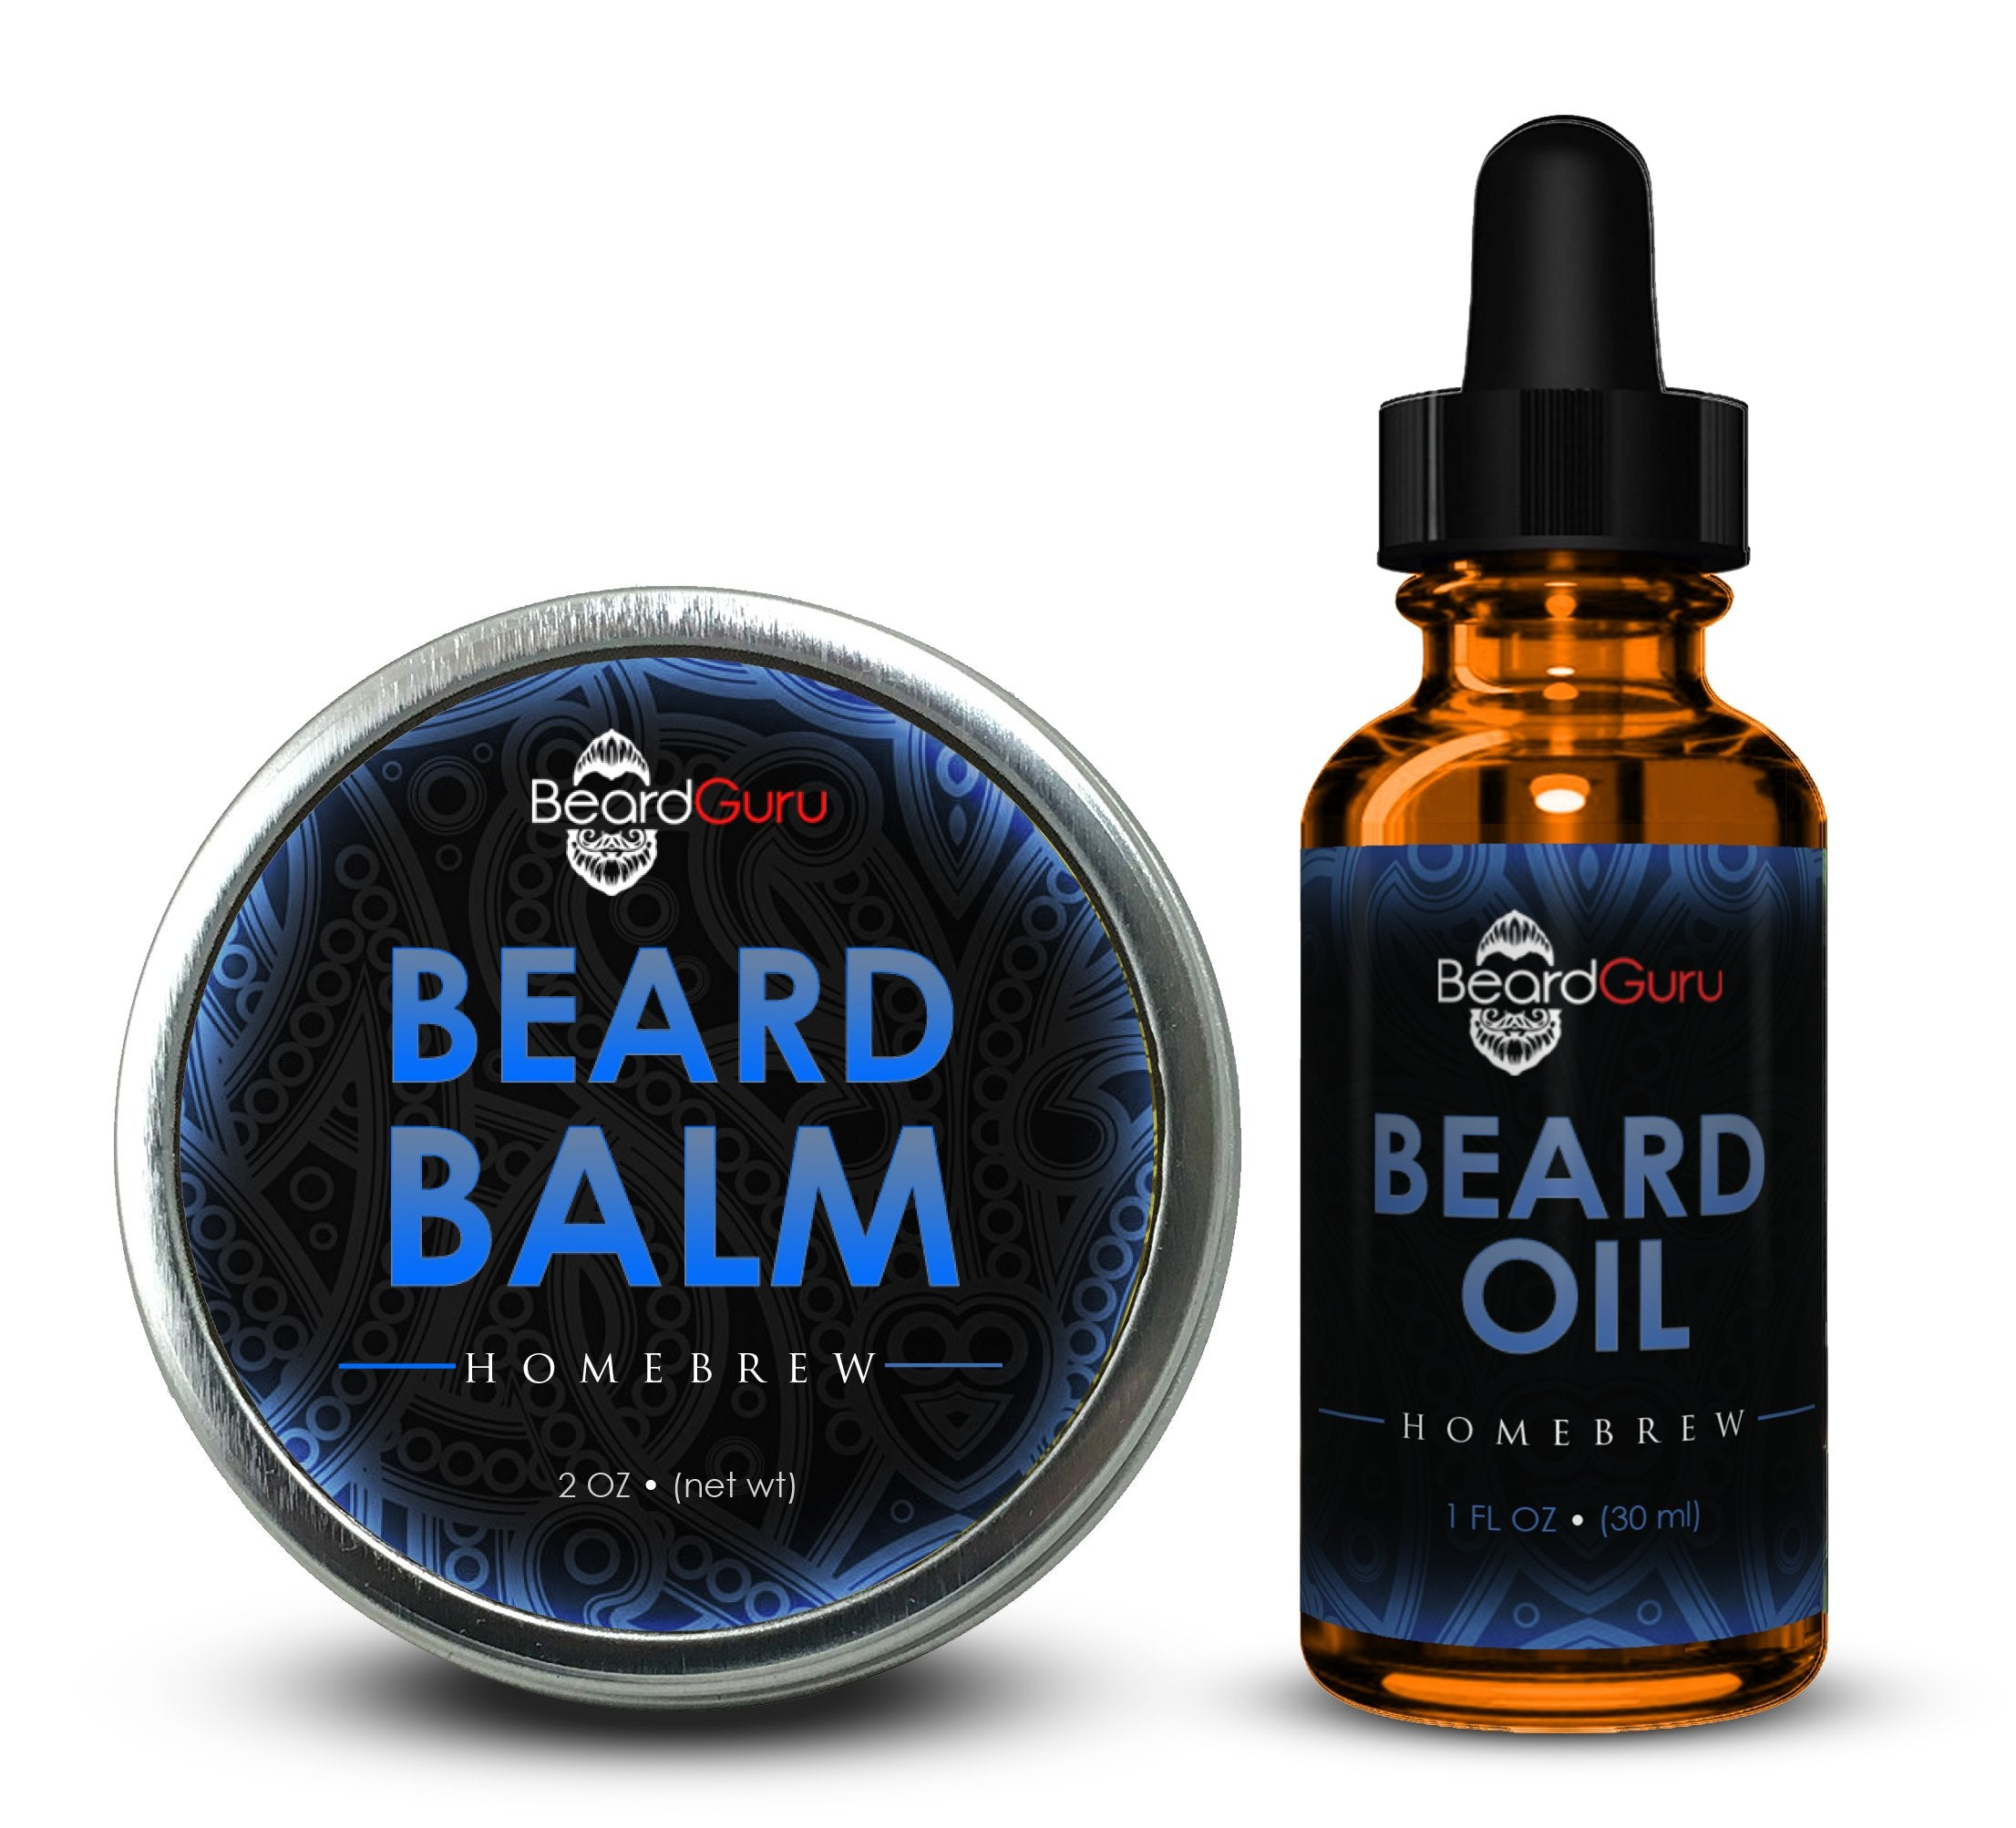 BreadGuru Premium Beard Balm: Home Brew